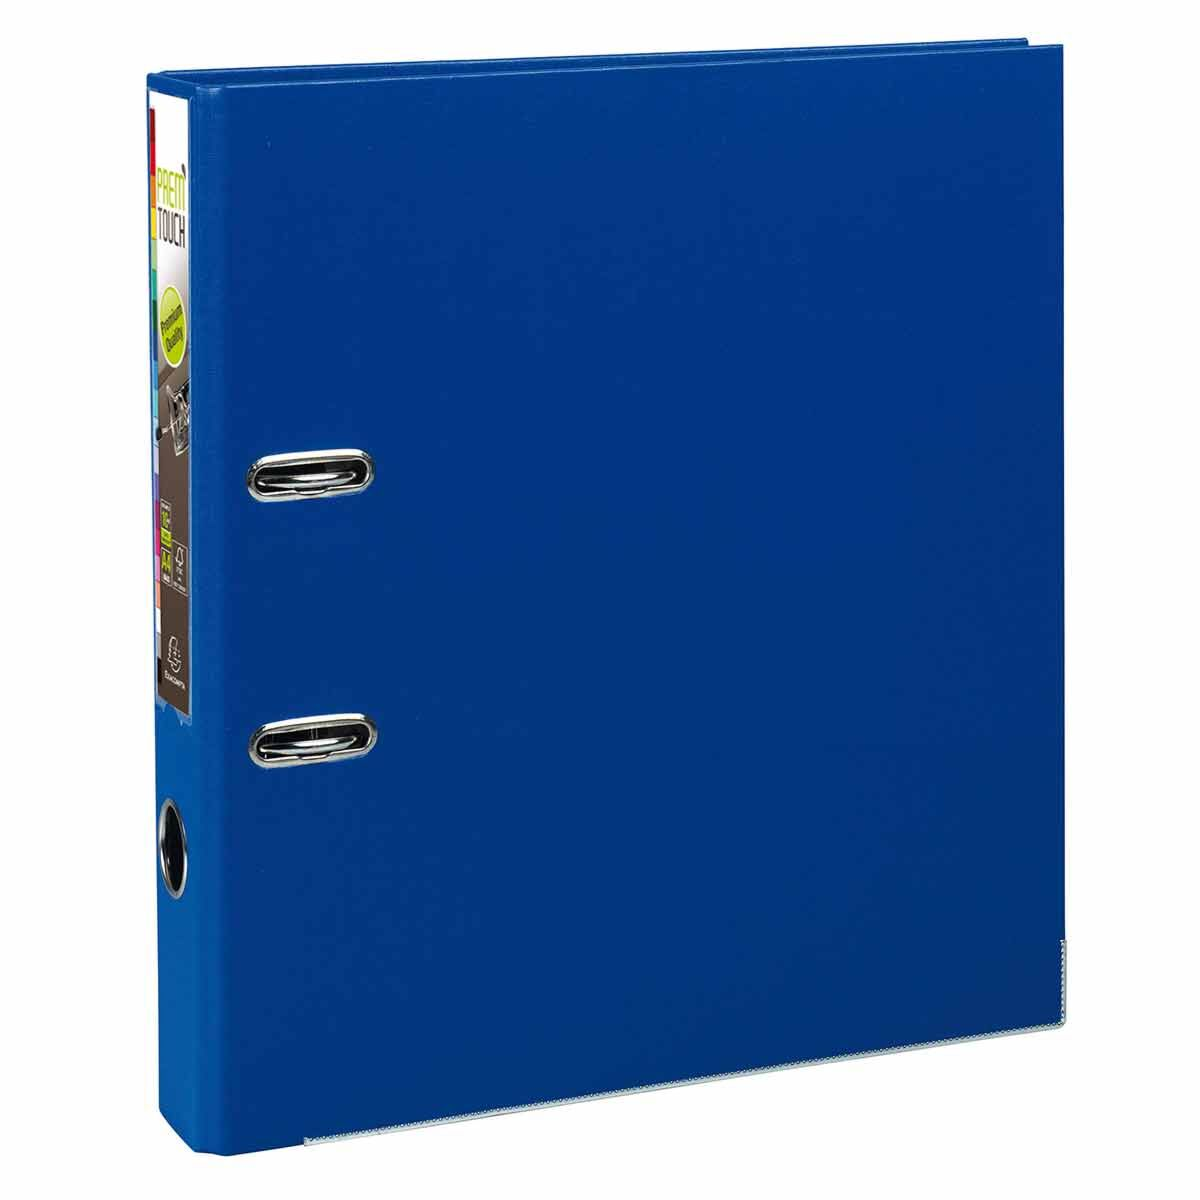 Exacompta PremTouch Lever Arch File A4 Plus PP 50mm Pack of 10 Dark Blue